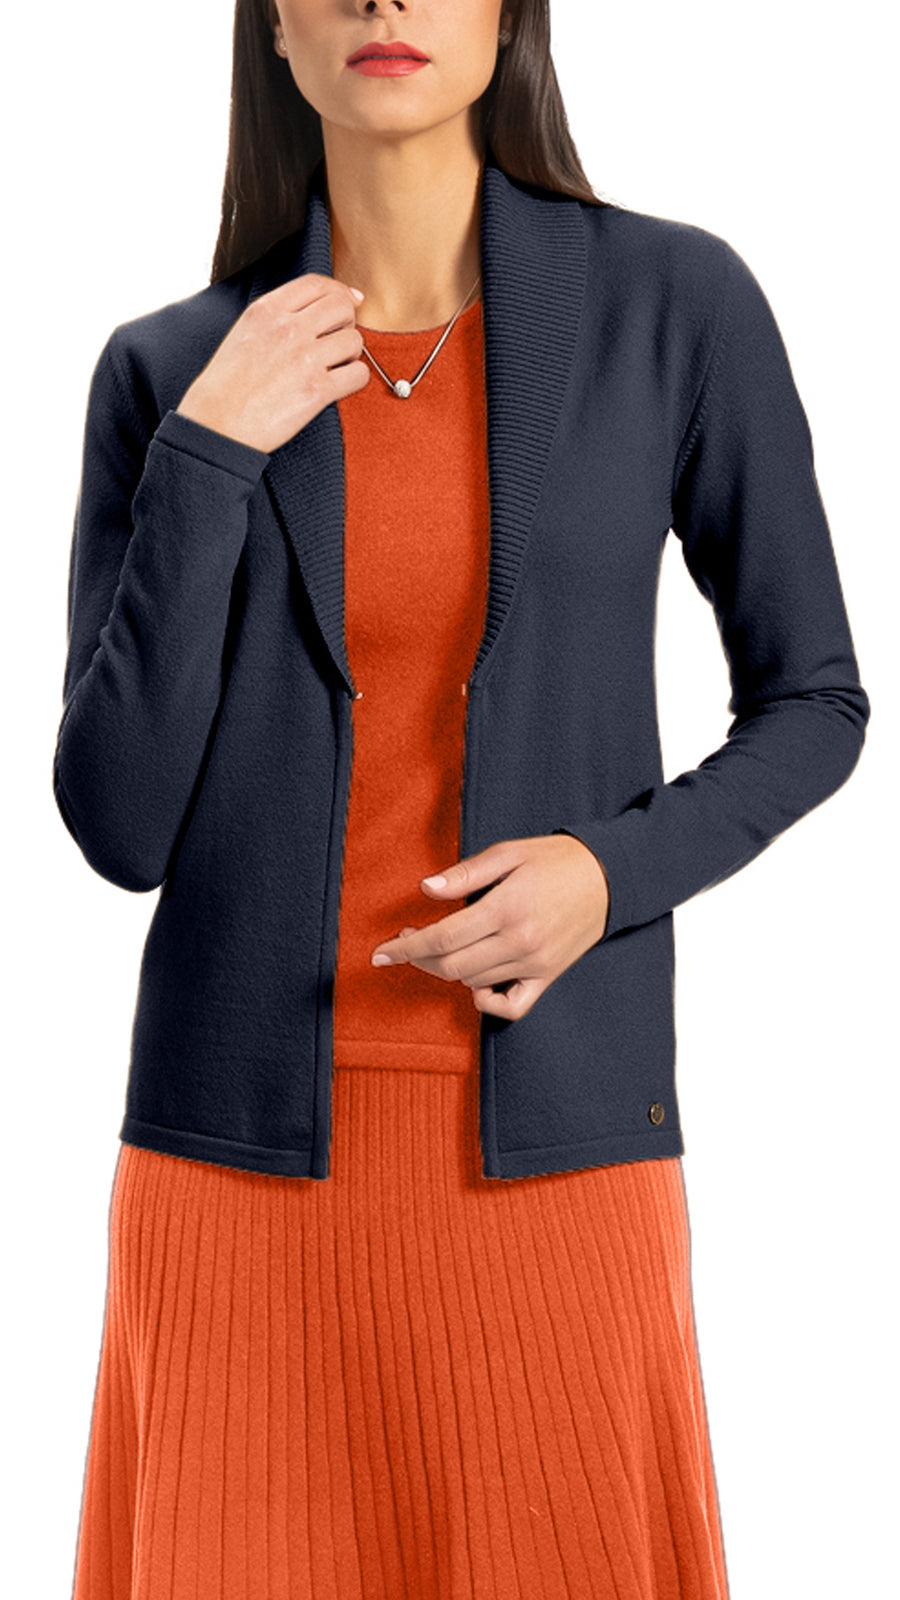 CONTEMPO Elsie Flat-Knit Cardigan, Navy